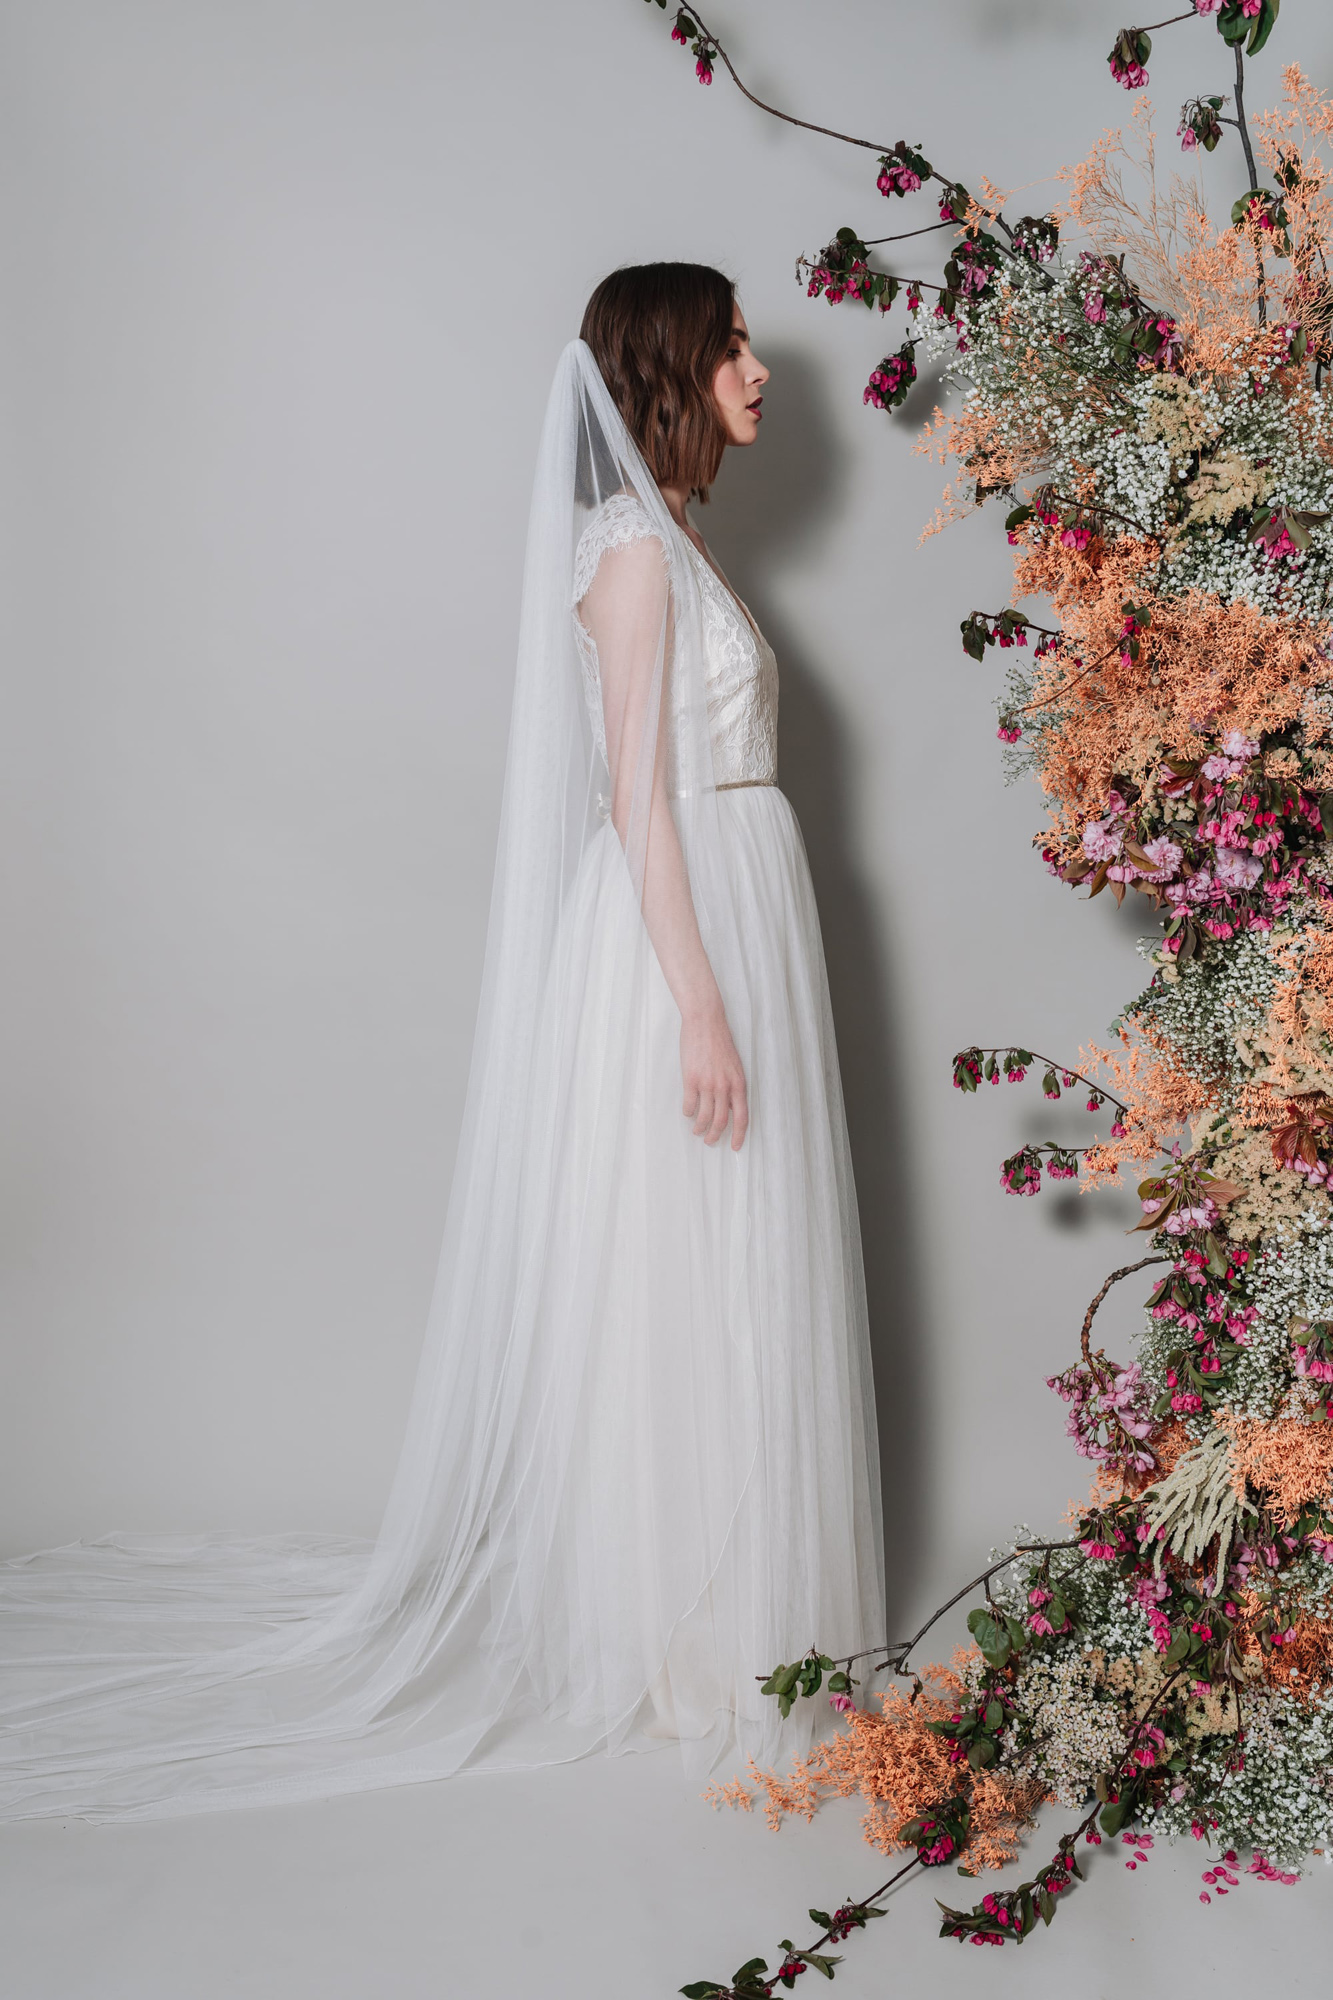 Kate-Beaumont-Sheffield-Picot-Edge-Silky-Tulle-Ethereal-Veil-9.jpg